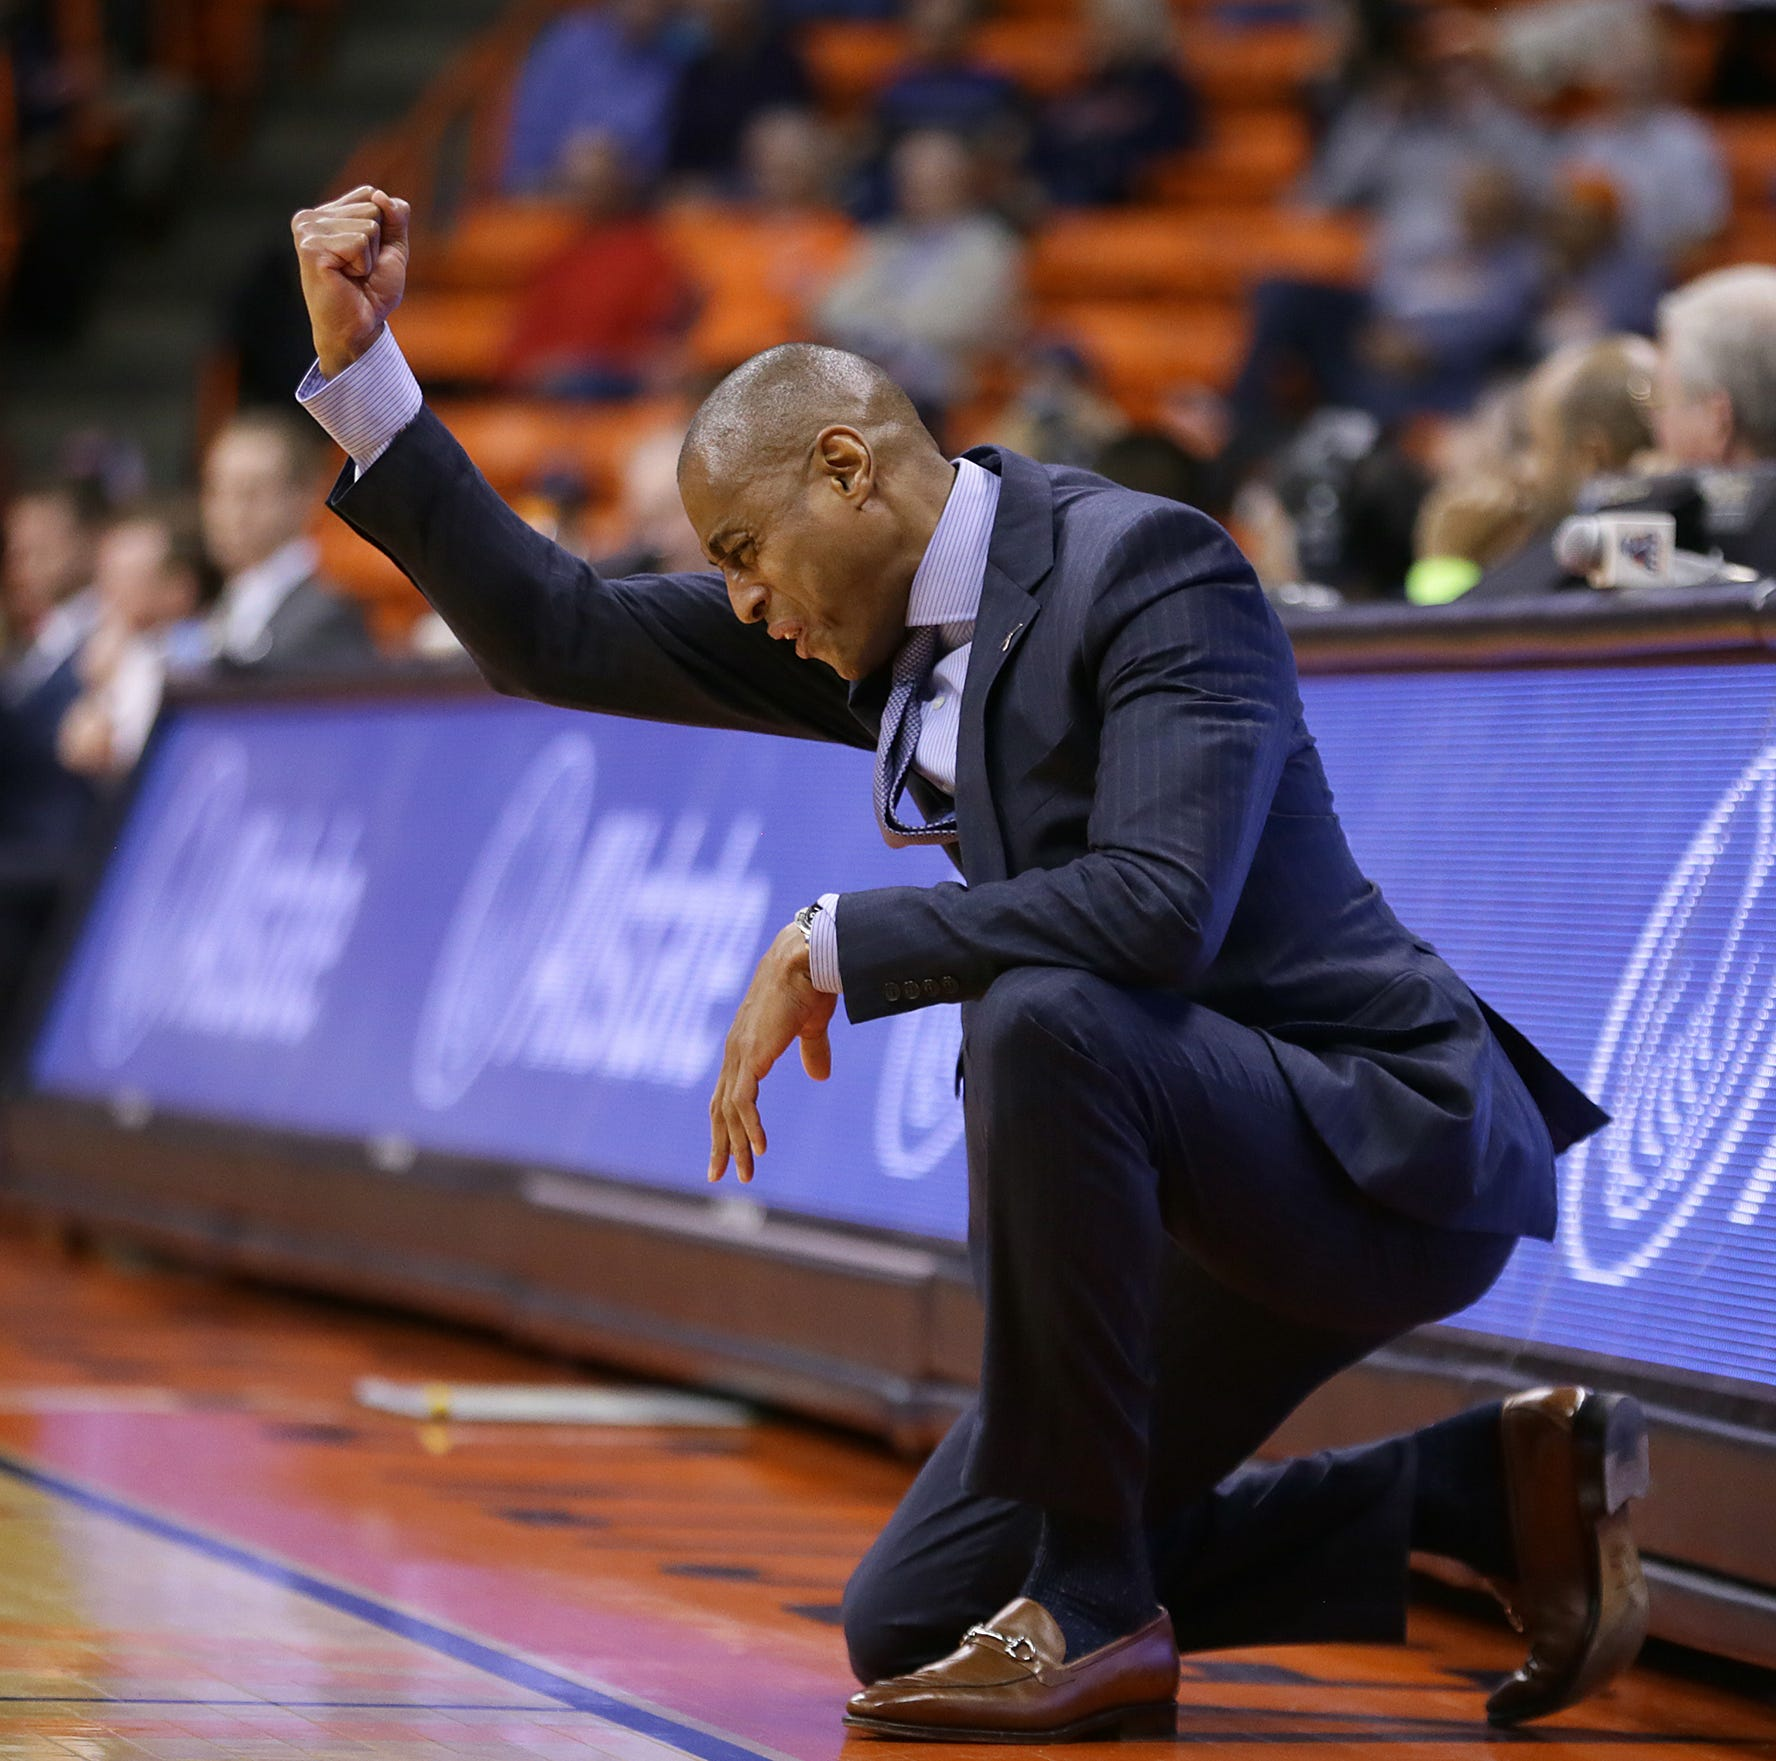 UTEP men's basketball falls to Middle Tennessee after Terry ejected, 4 players foul out